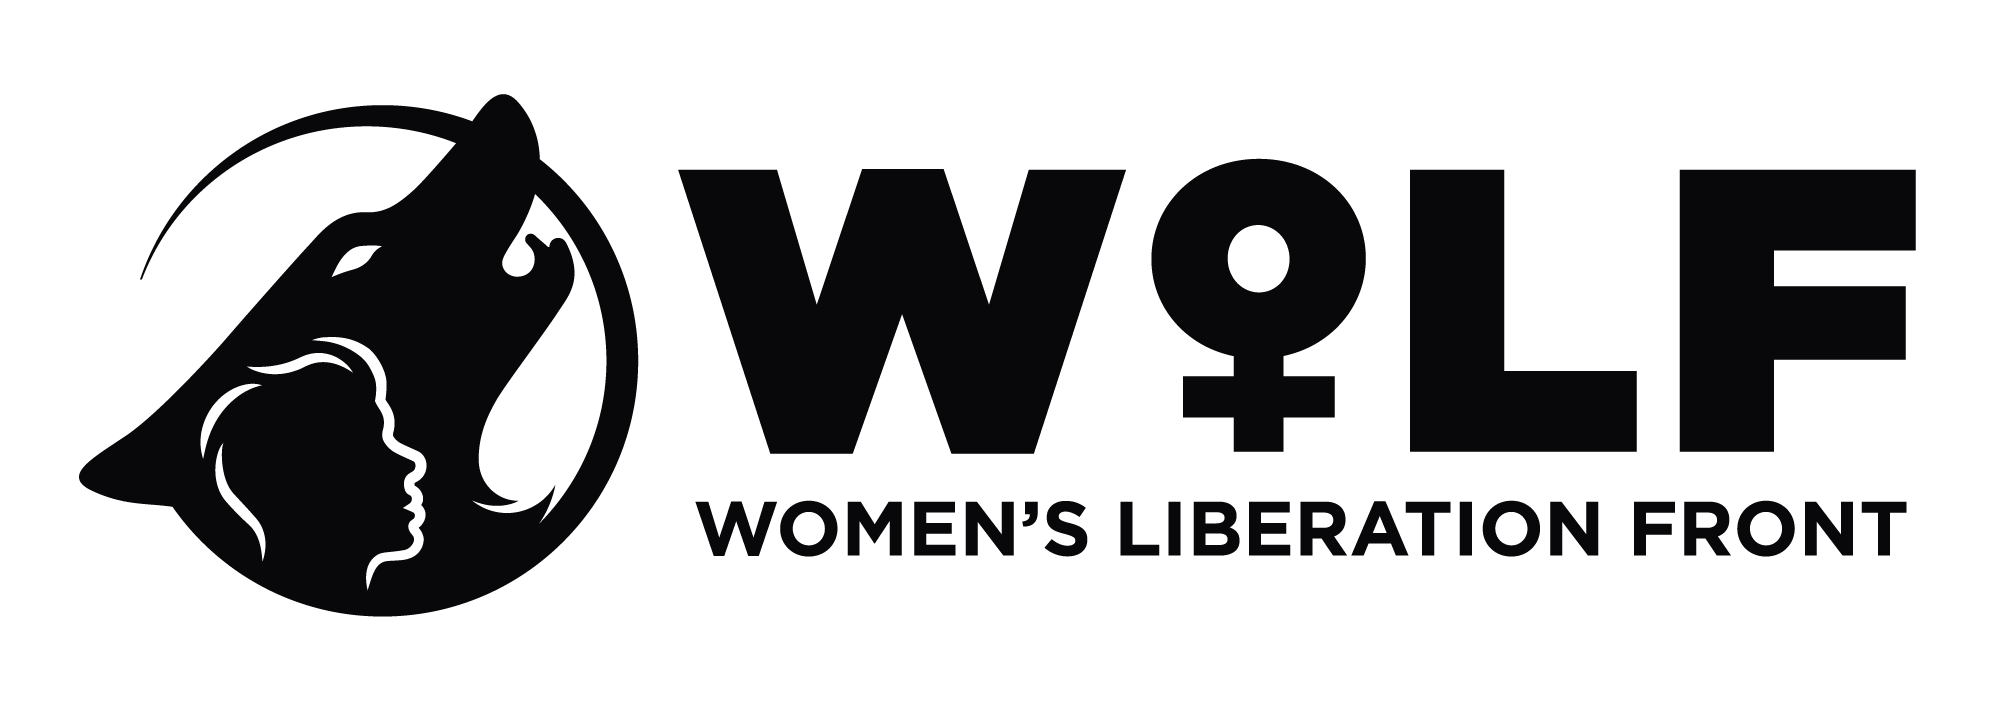 Women's Liberation Front